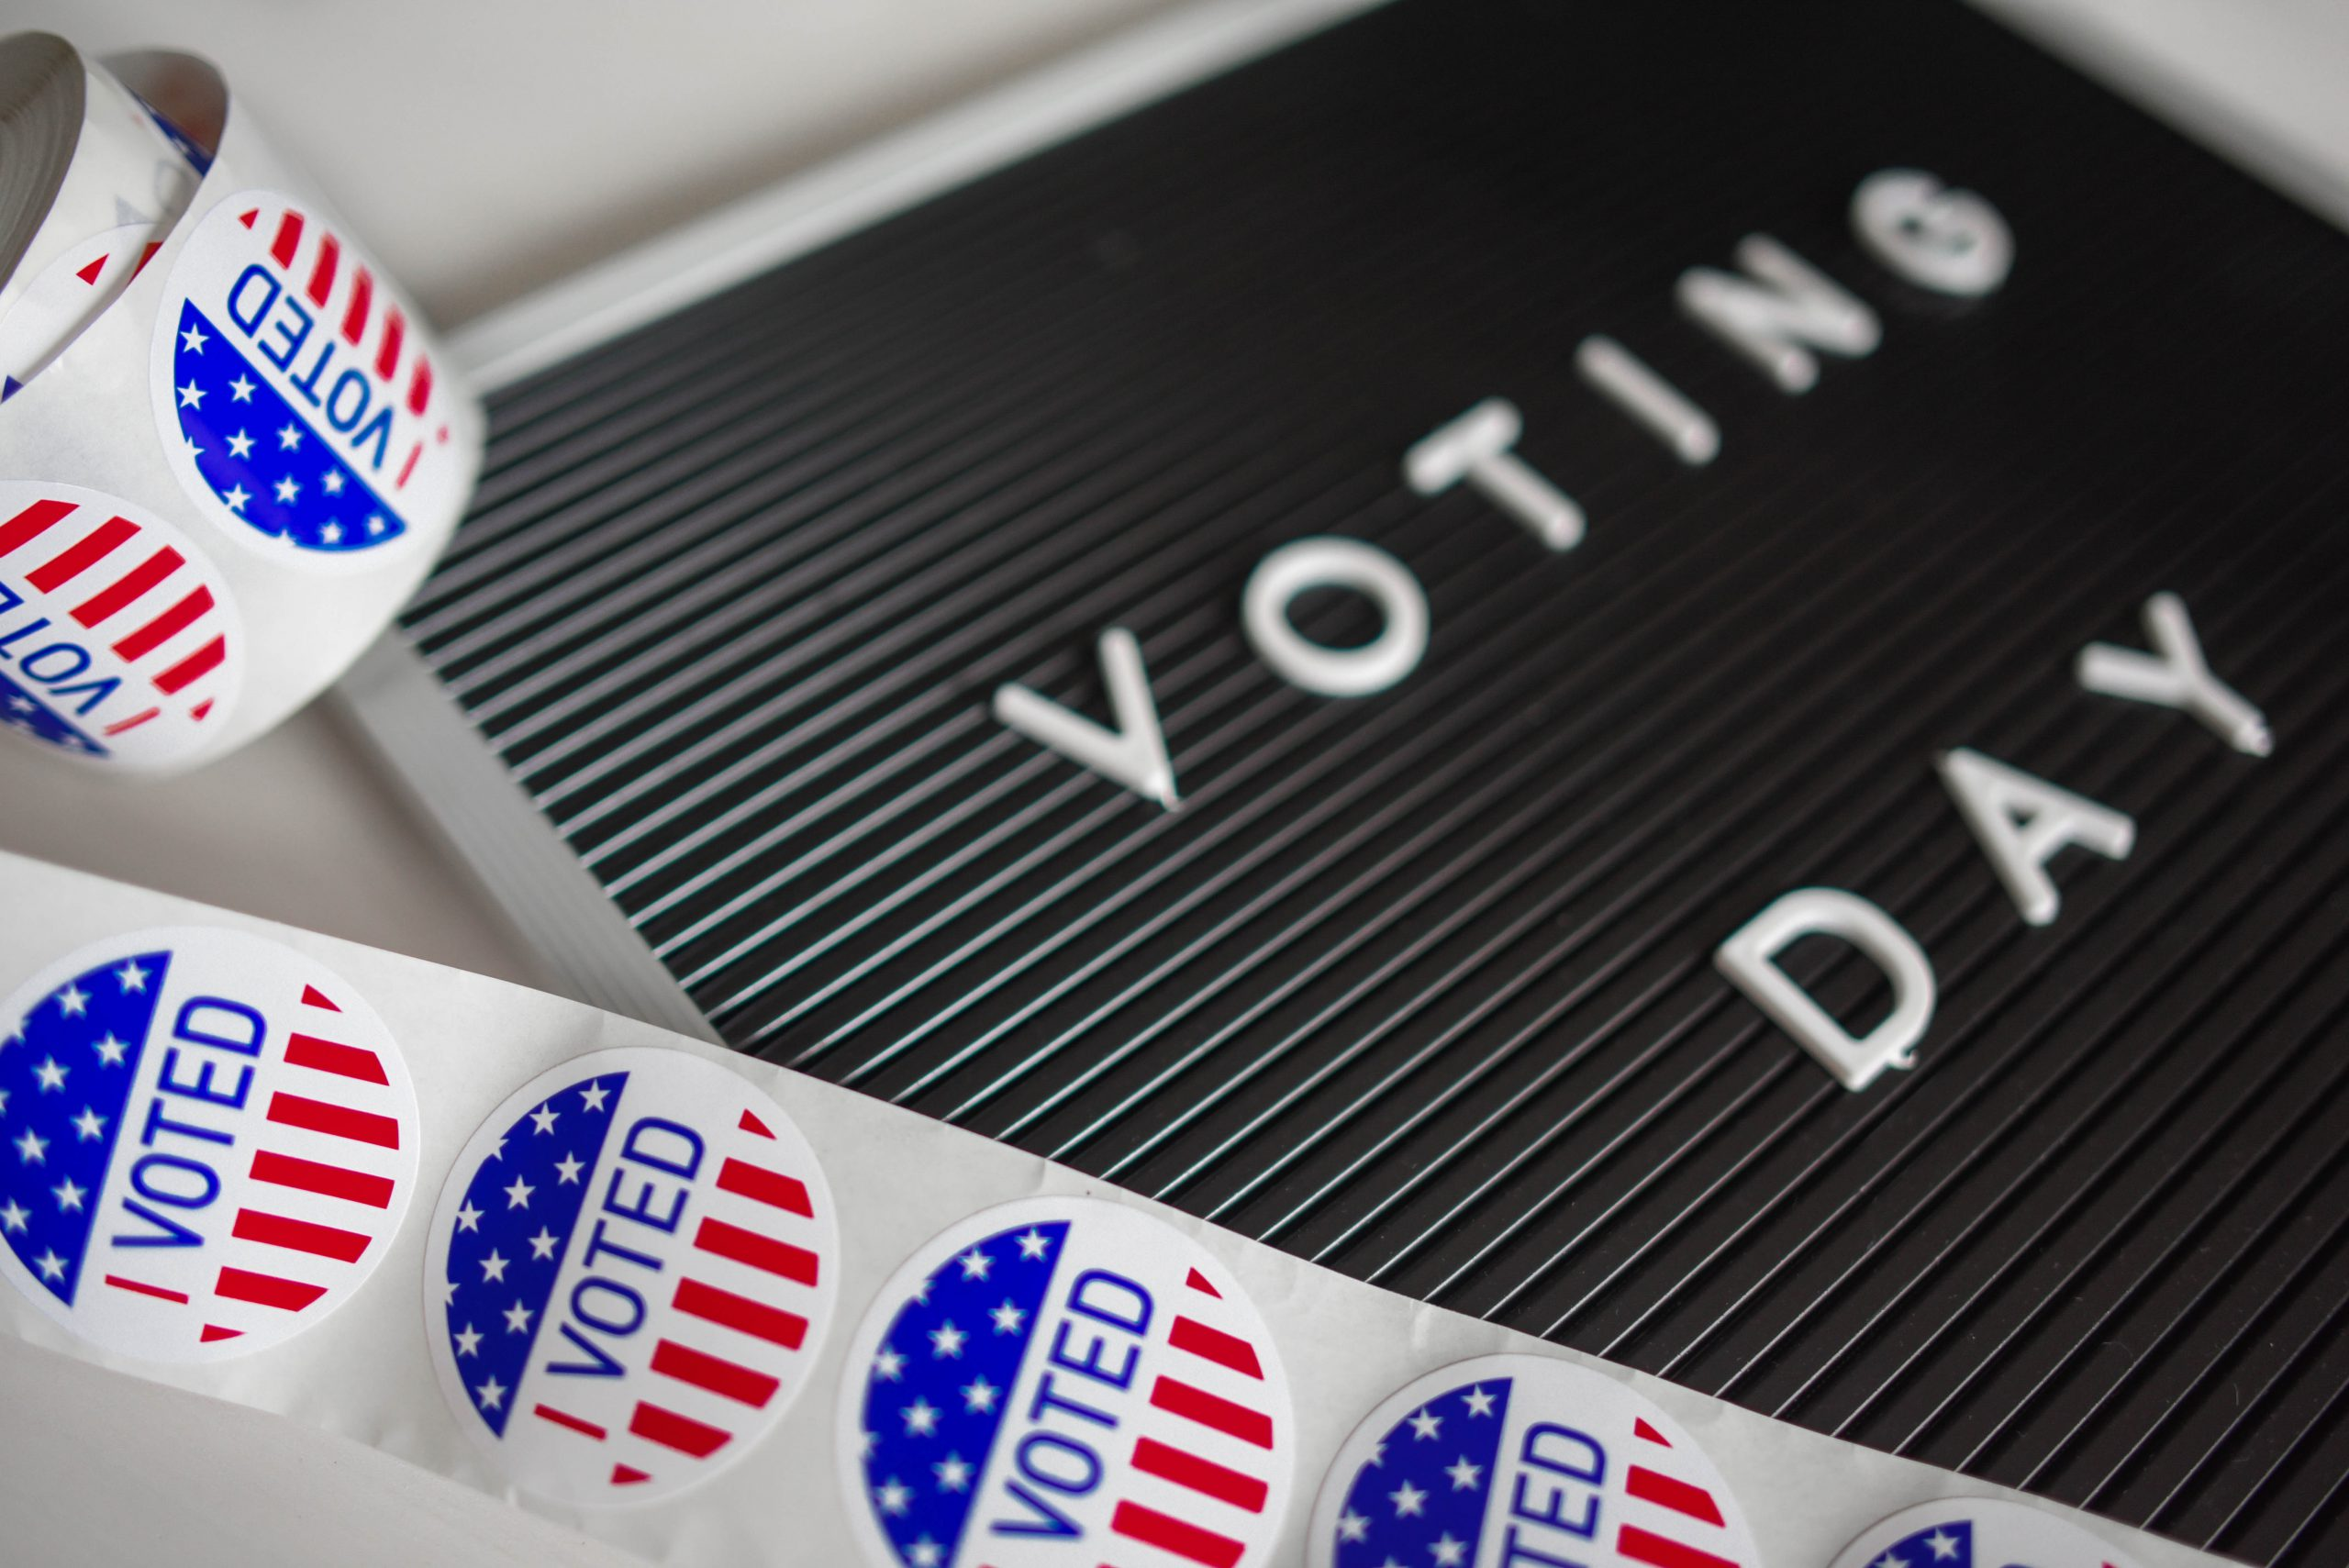 Voting sticker and sign